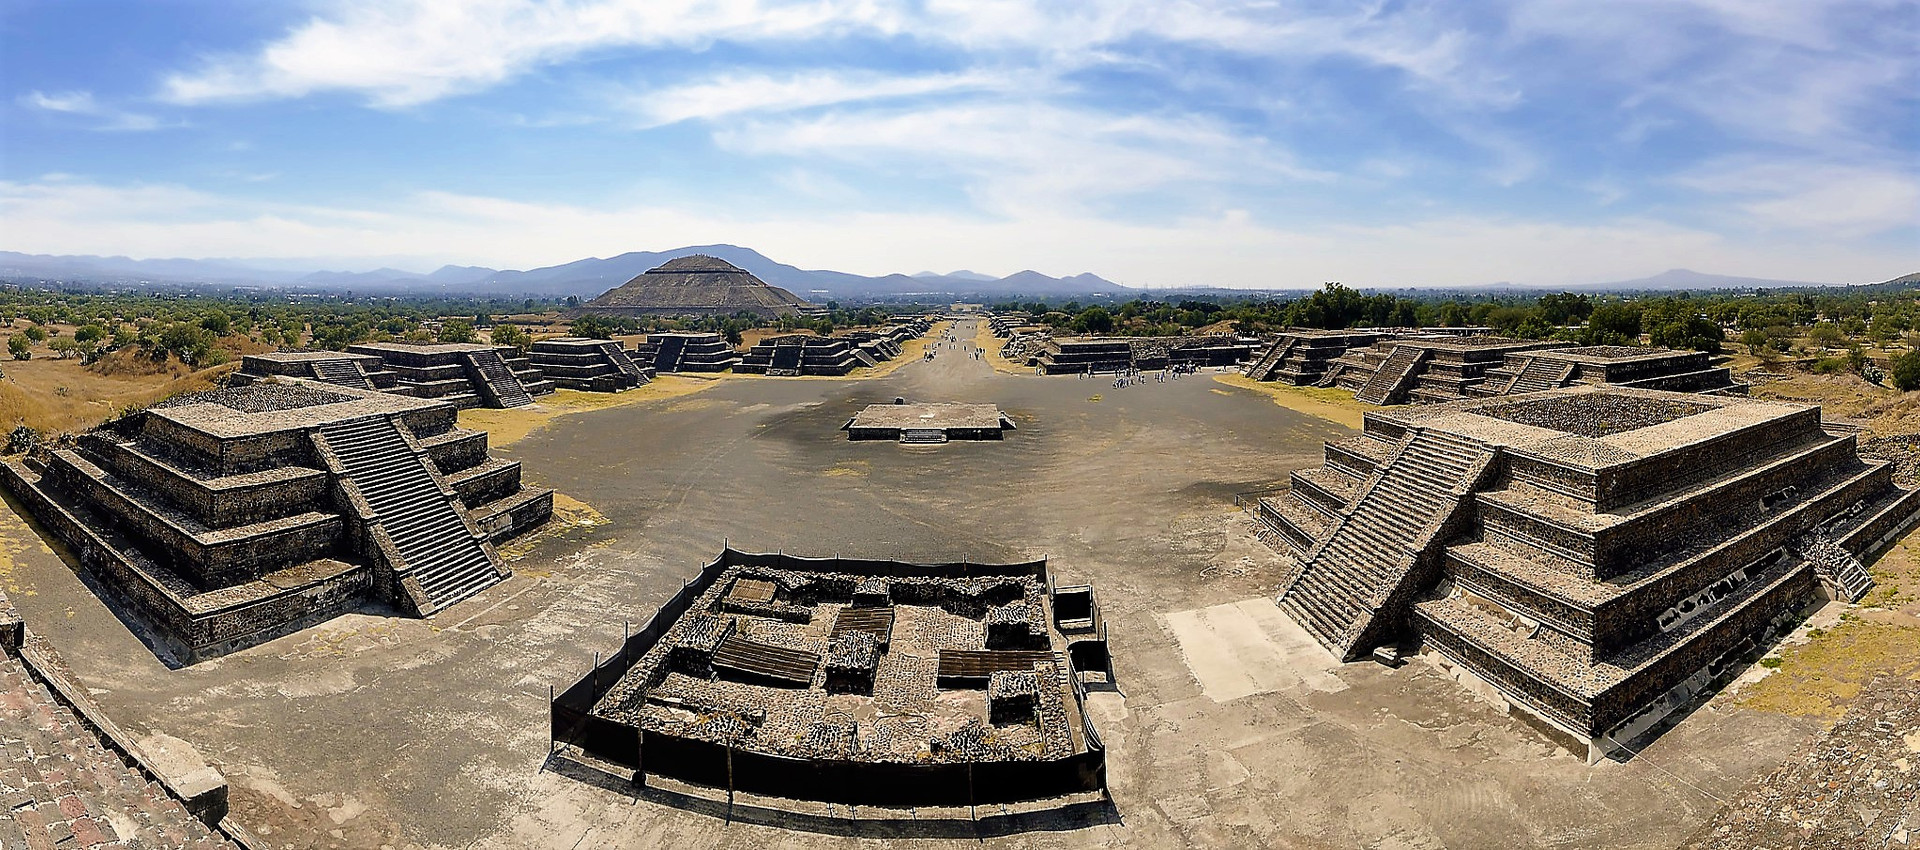 The Temple alignments in Teotihuacan